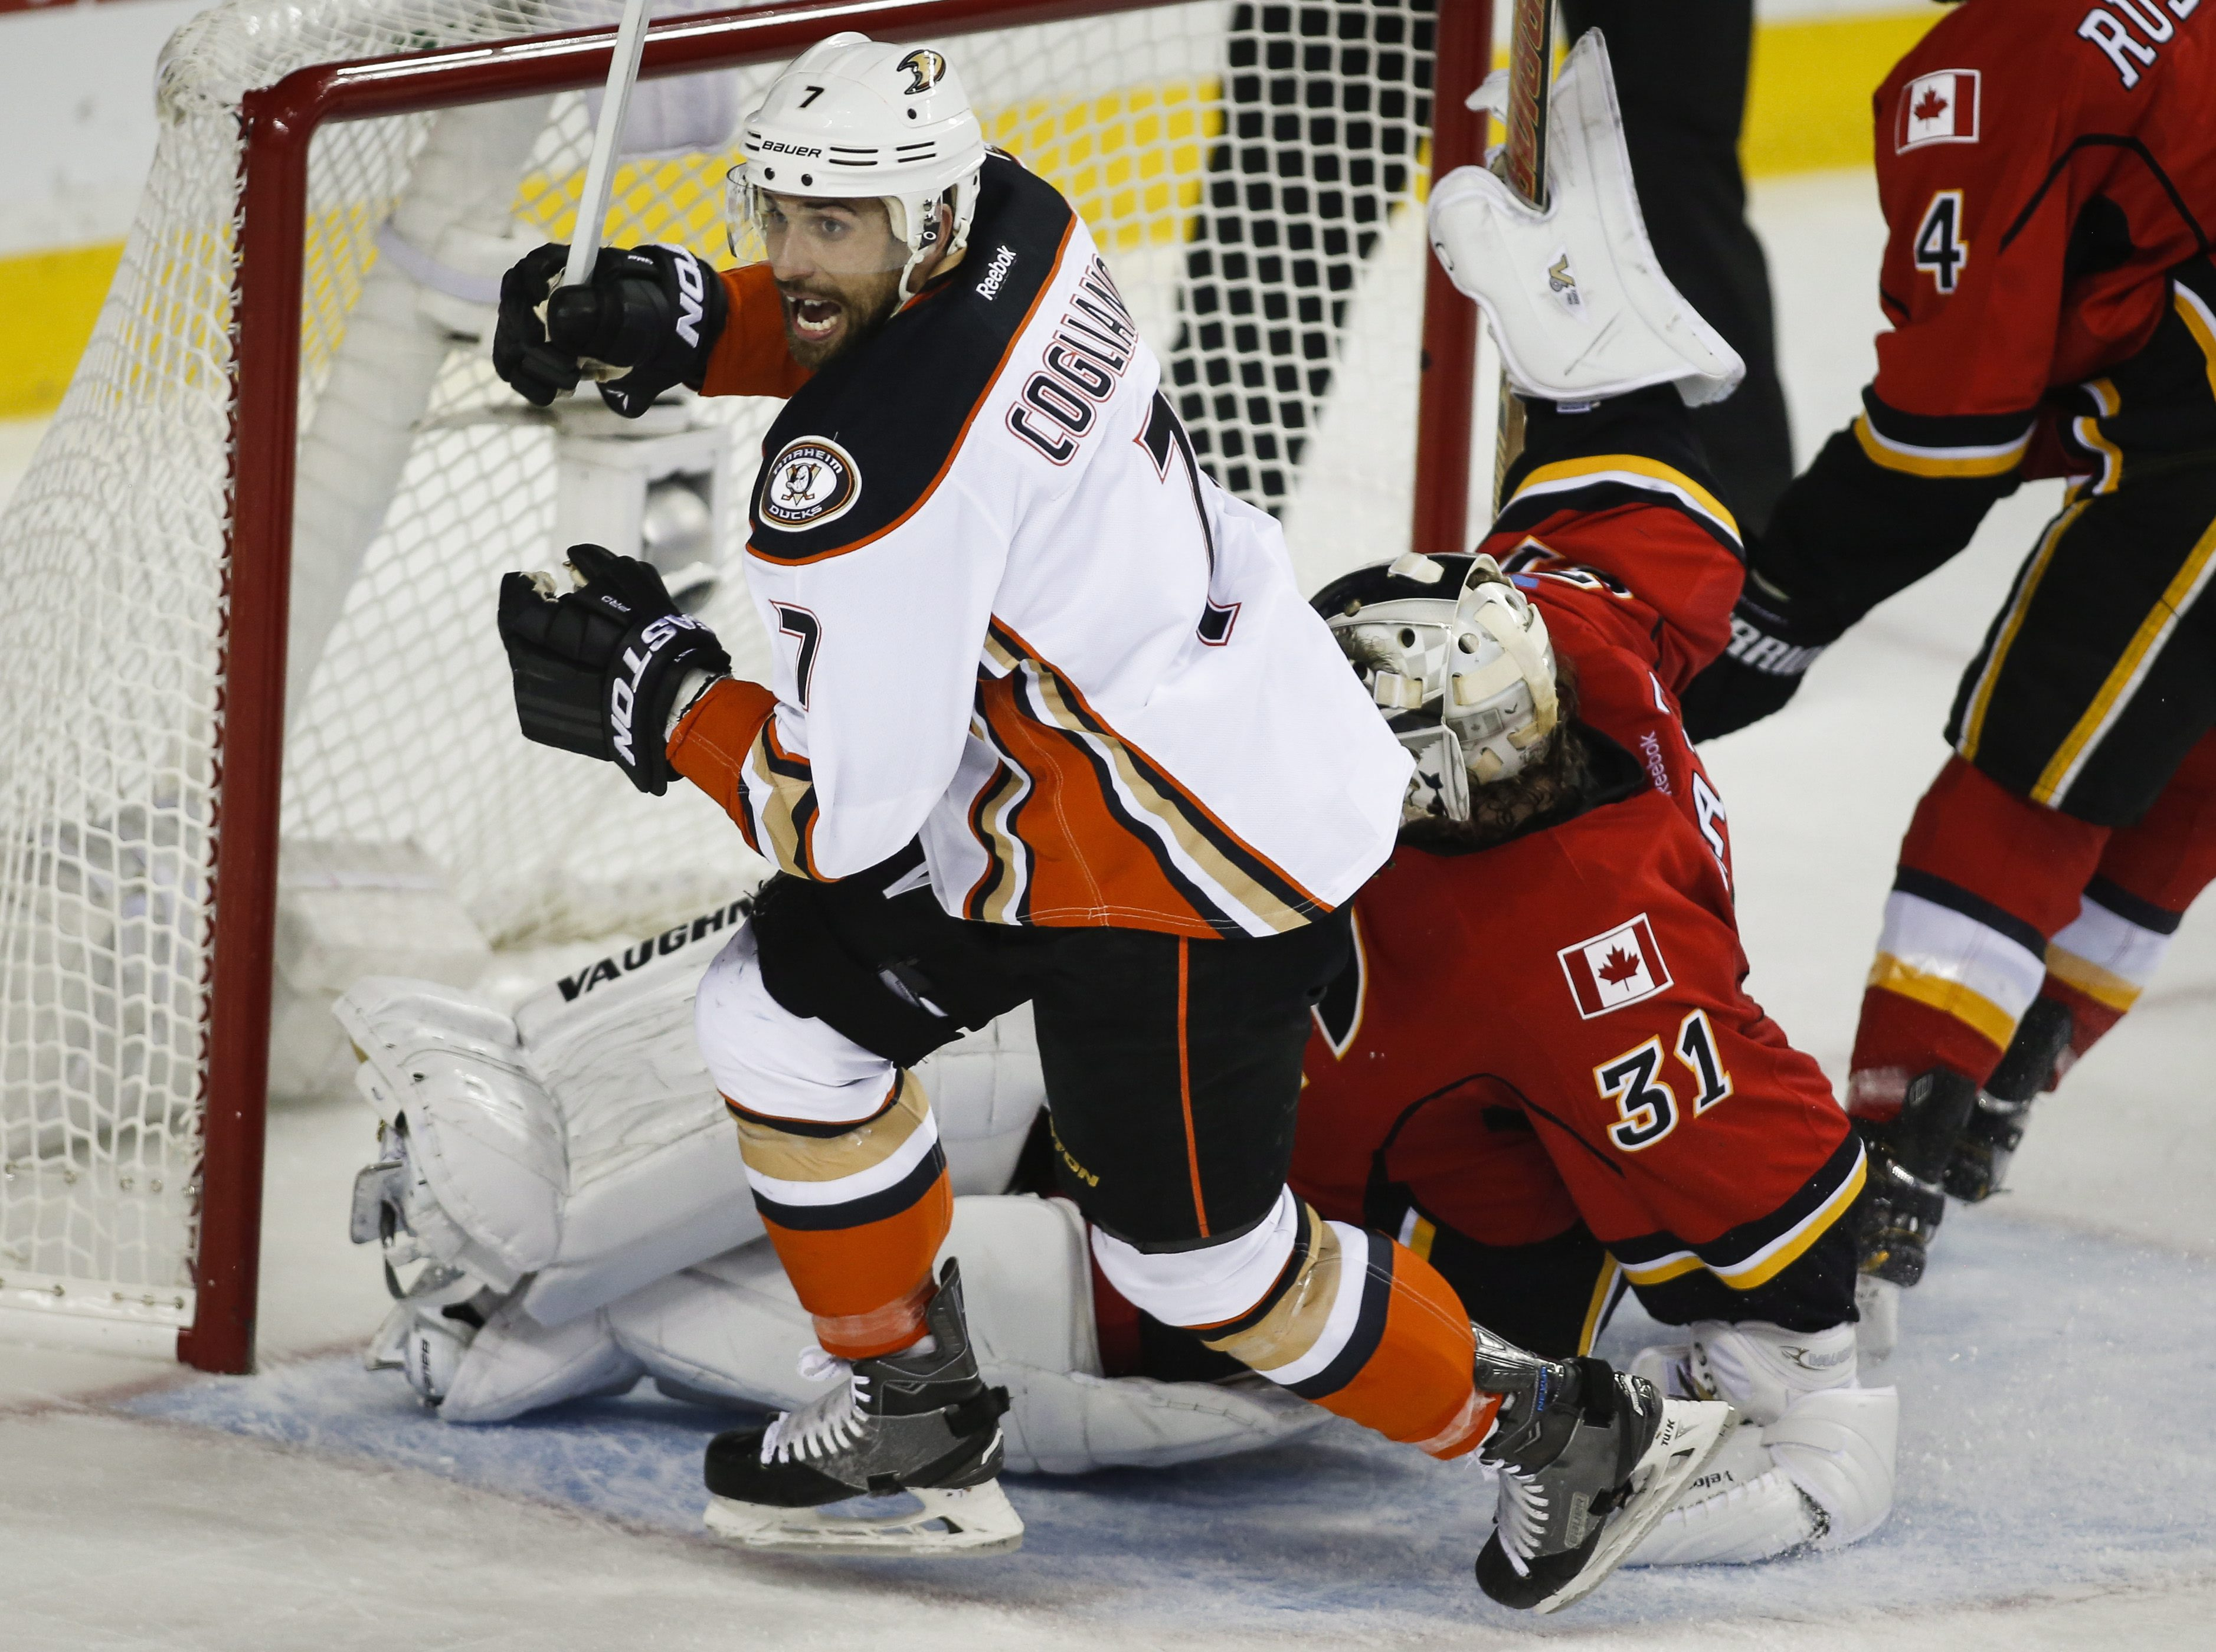 Anaheim Ducks' Andrew Cogliano, left, celebrates his tying goal as Calgary Flames goalie Karri Ramo, from Finland, picks himself up during the second period of Game 4 of NHL hockey second-round playoff action in Calgary, Alberta, Friday, May 8, 2015. (Jef